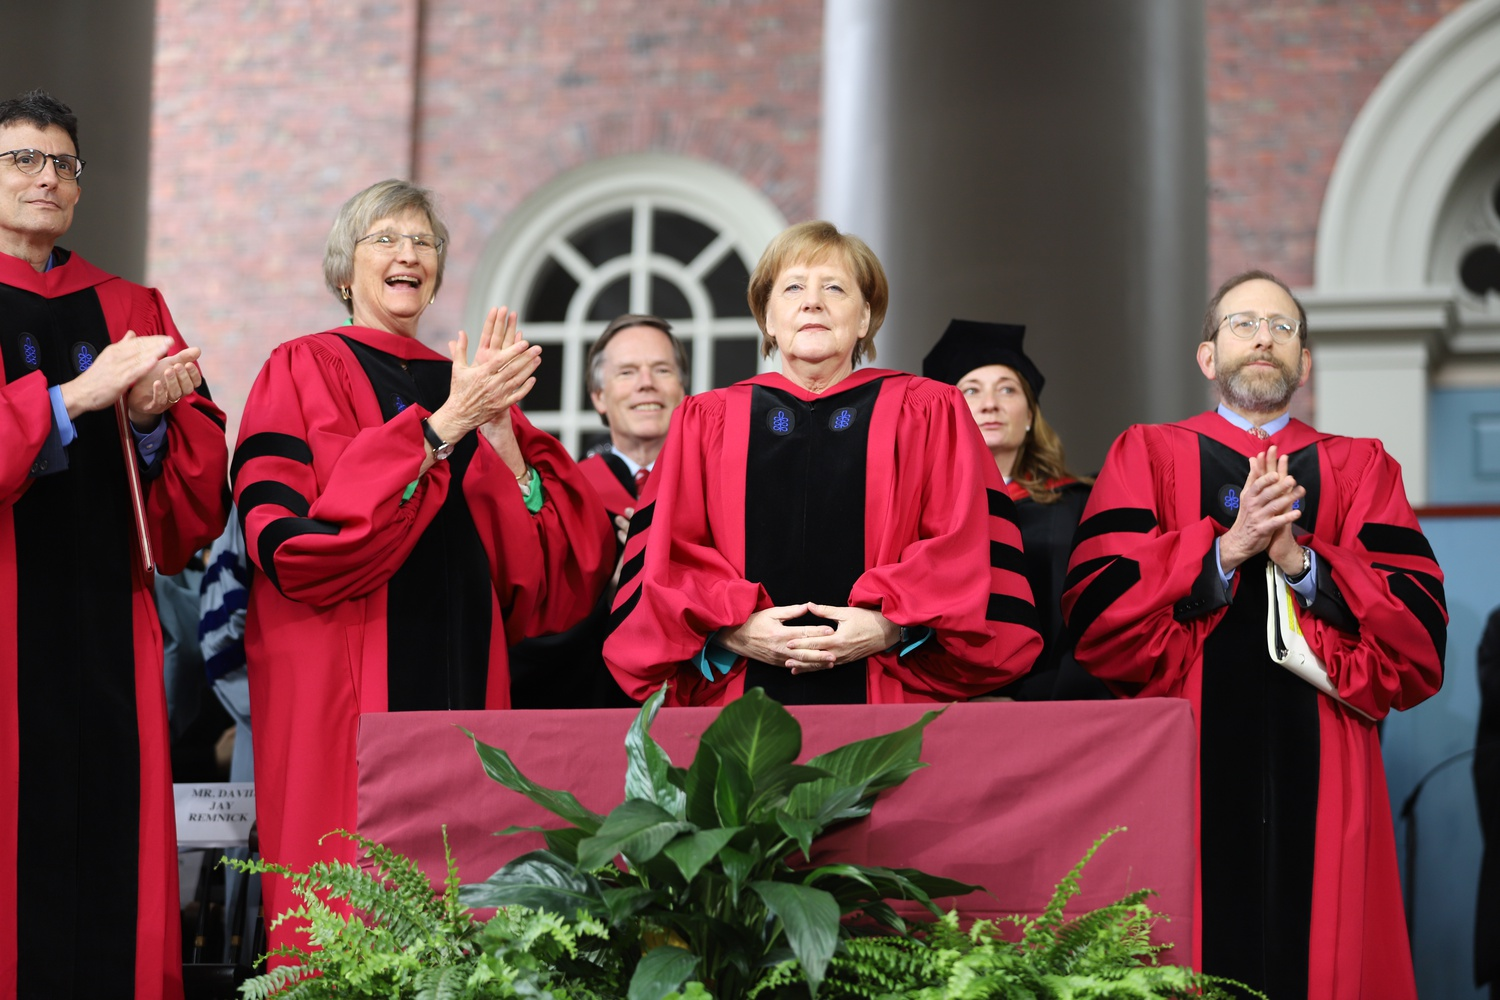 The crowd gives a standing ovation to German Chancellor Angela Merkel as she is introduced as the recipient of an honorary degree.